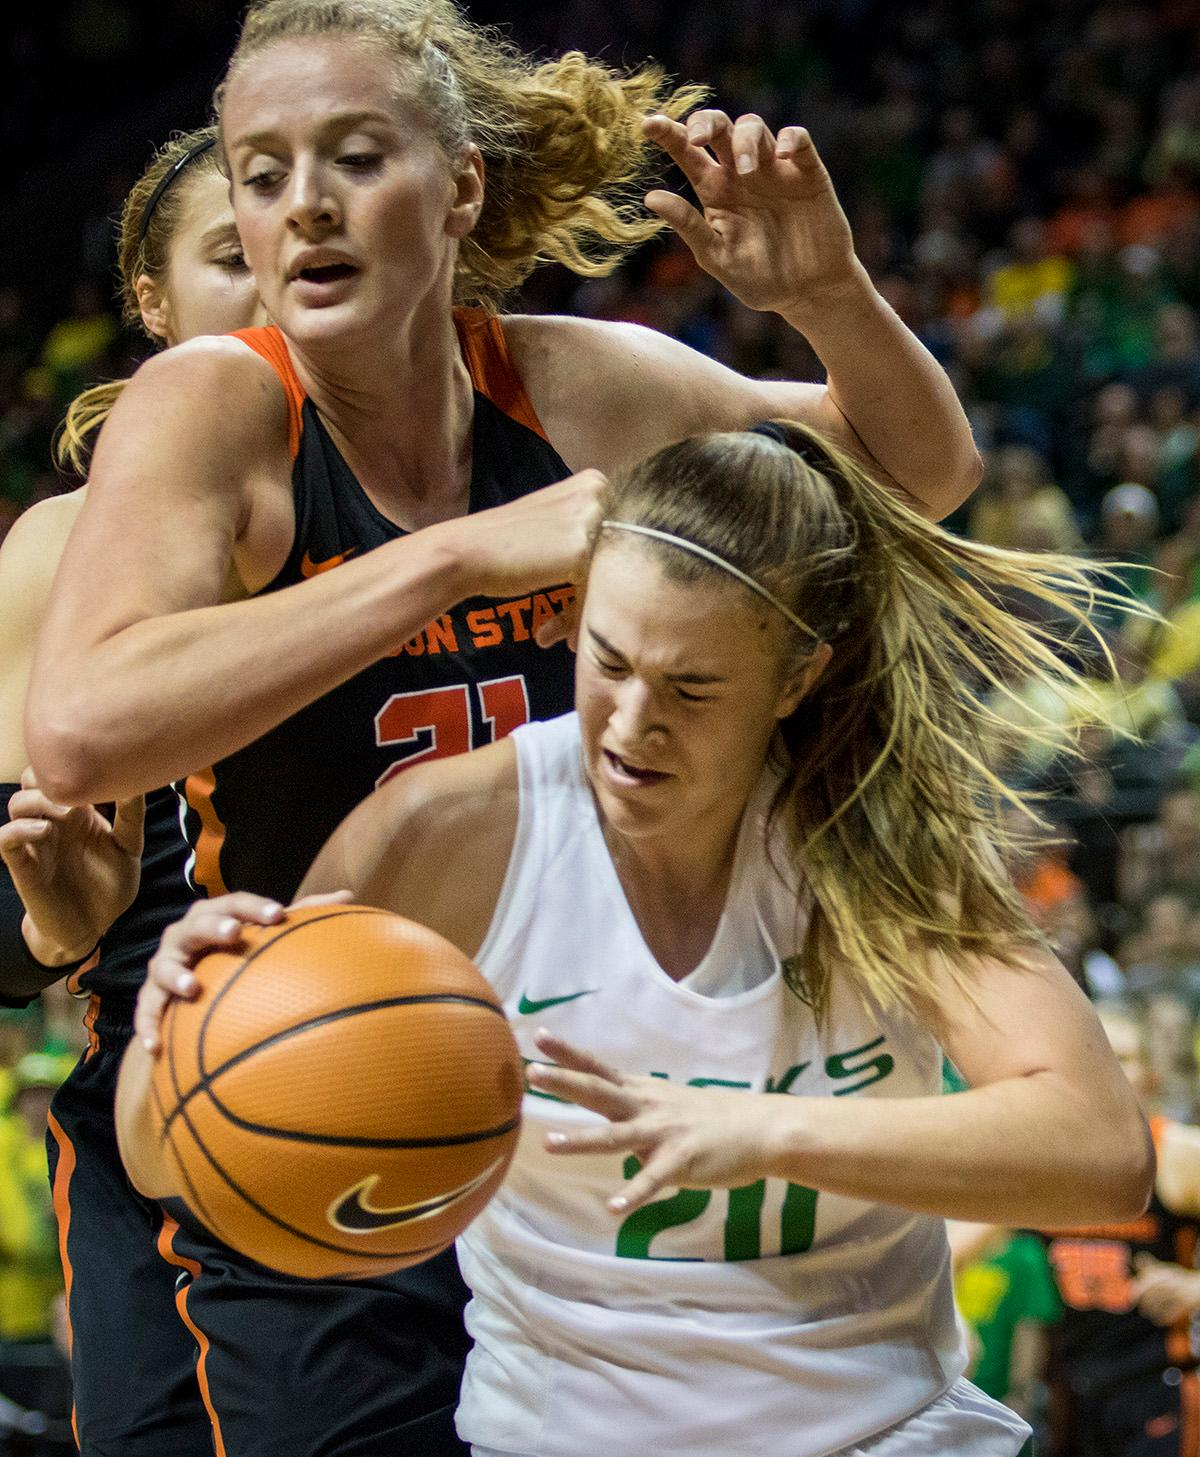 Oregon Ducks Sabrina Ionescu (#20) attempts to keep the ball away from Beaver defense. The Oregon Ducks defeated the Oregon State Beavers 75-63 on Sunday afternoon in front of a crowd of 7,249 at Matthew Knight Arena. The Ducks and Beavers split the two game Civil War with the Beavers defeating the Ducks on Friday night in Corvallis. The Ducks had four players in double digits: Satou Sabally with 21 points, Maite Cazorla with 16, Sabrina Ionescu with 15, and Mallory McGwire with 14. The Ducks shot 48.4% from the floor compared to the Beavers 37.3%. The Ducks are now 7-1 in conference play. Photo by Rhianna Gelhart, Oregon News Lab